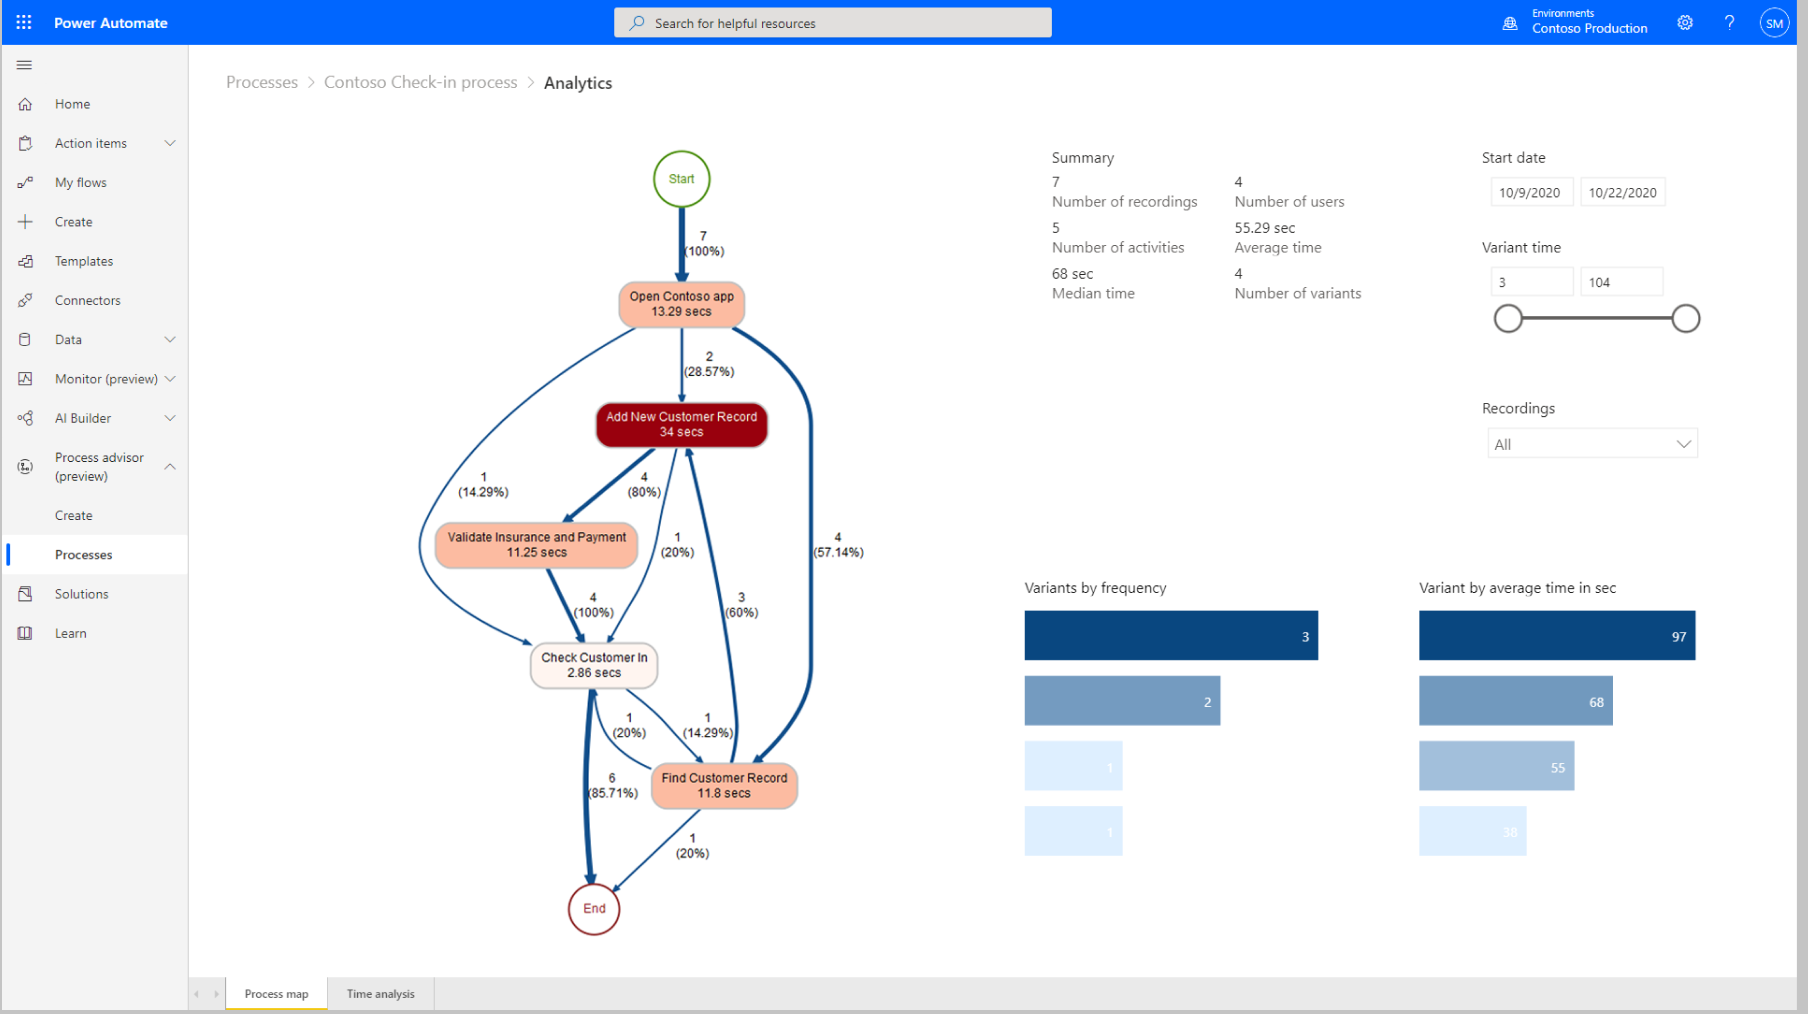 Screenshot of a rich process map